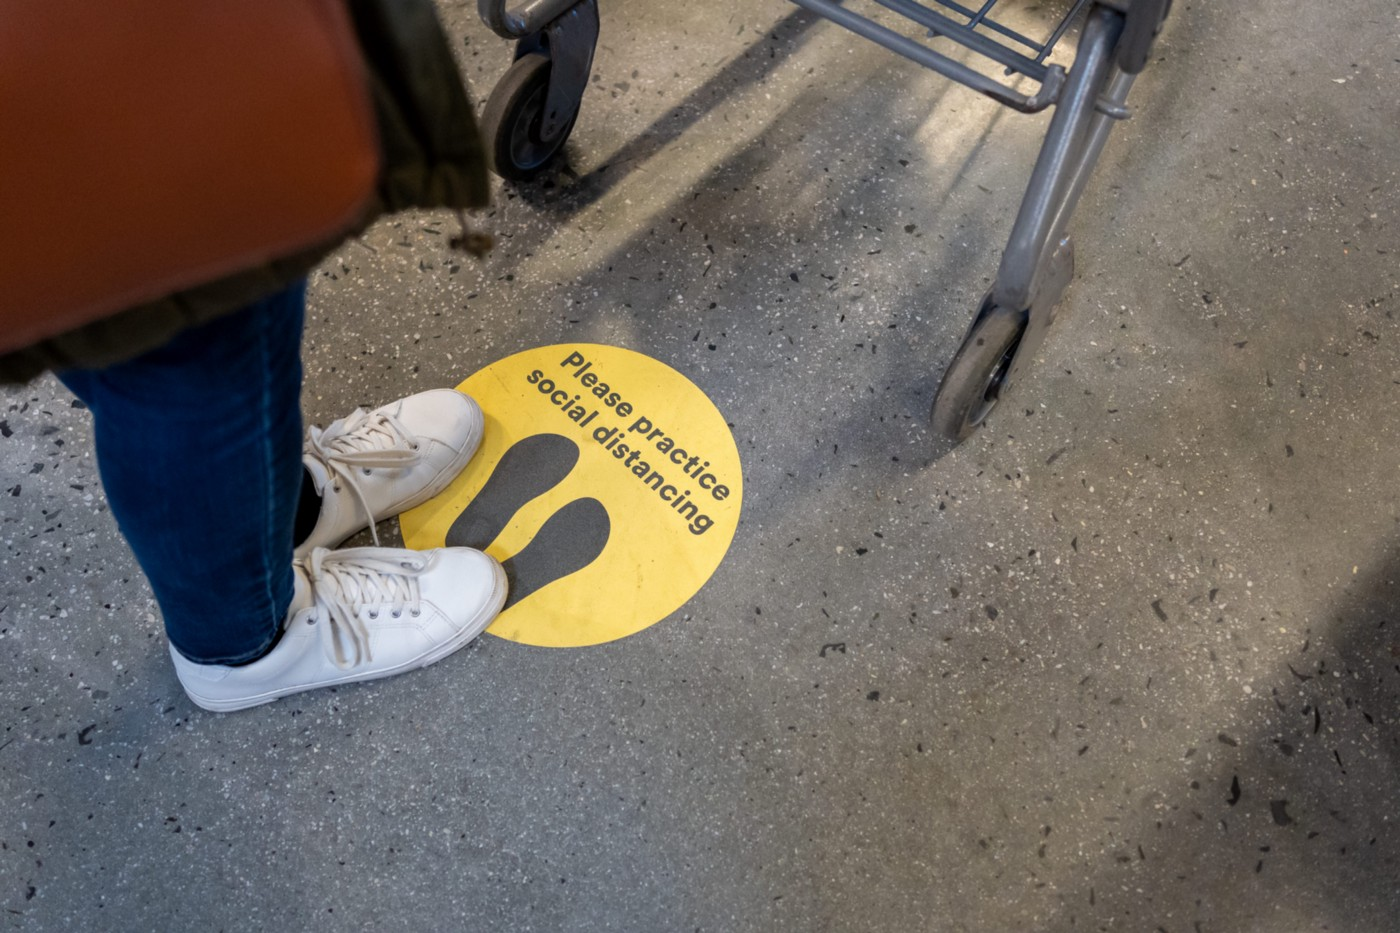 """A photo of a person standing on a sticker that says """"practice social distancing"""" at a grocery store."""